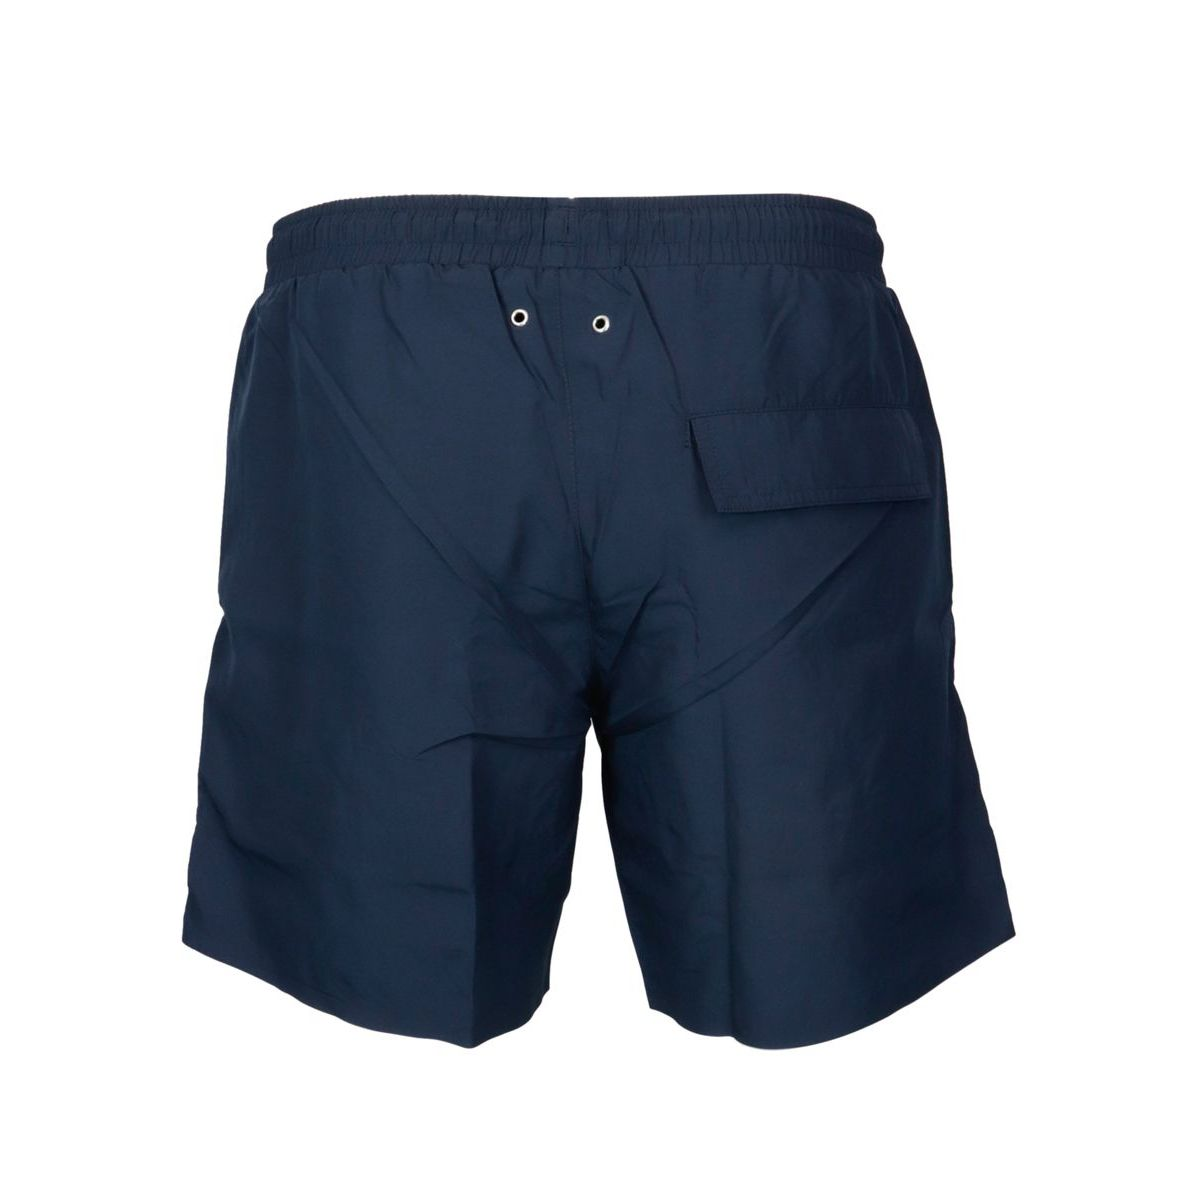 Beach shorts with laces and side logo Navy Lacoste